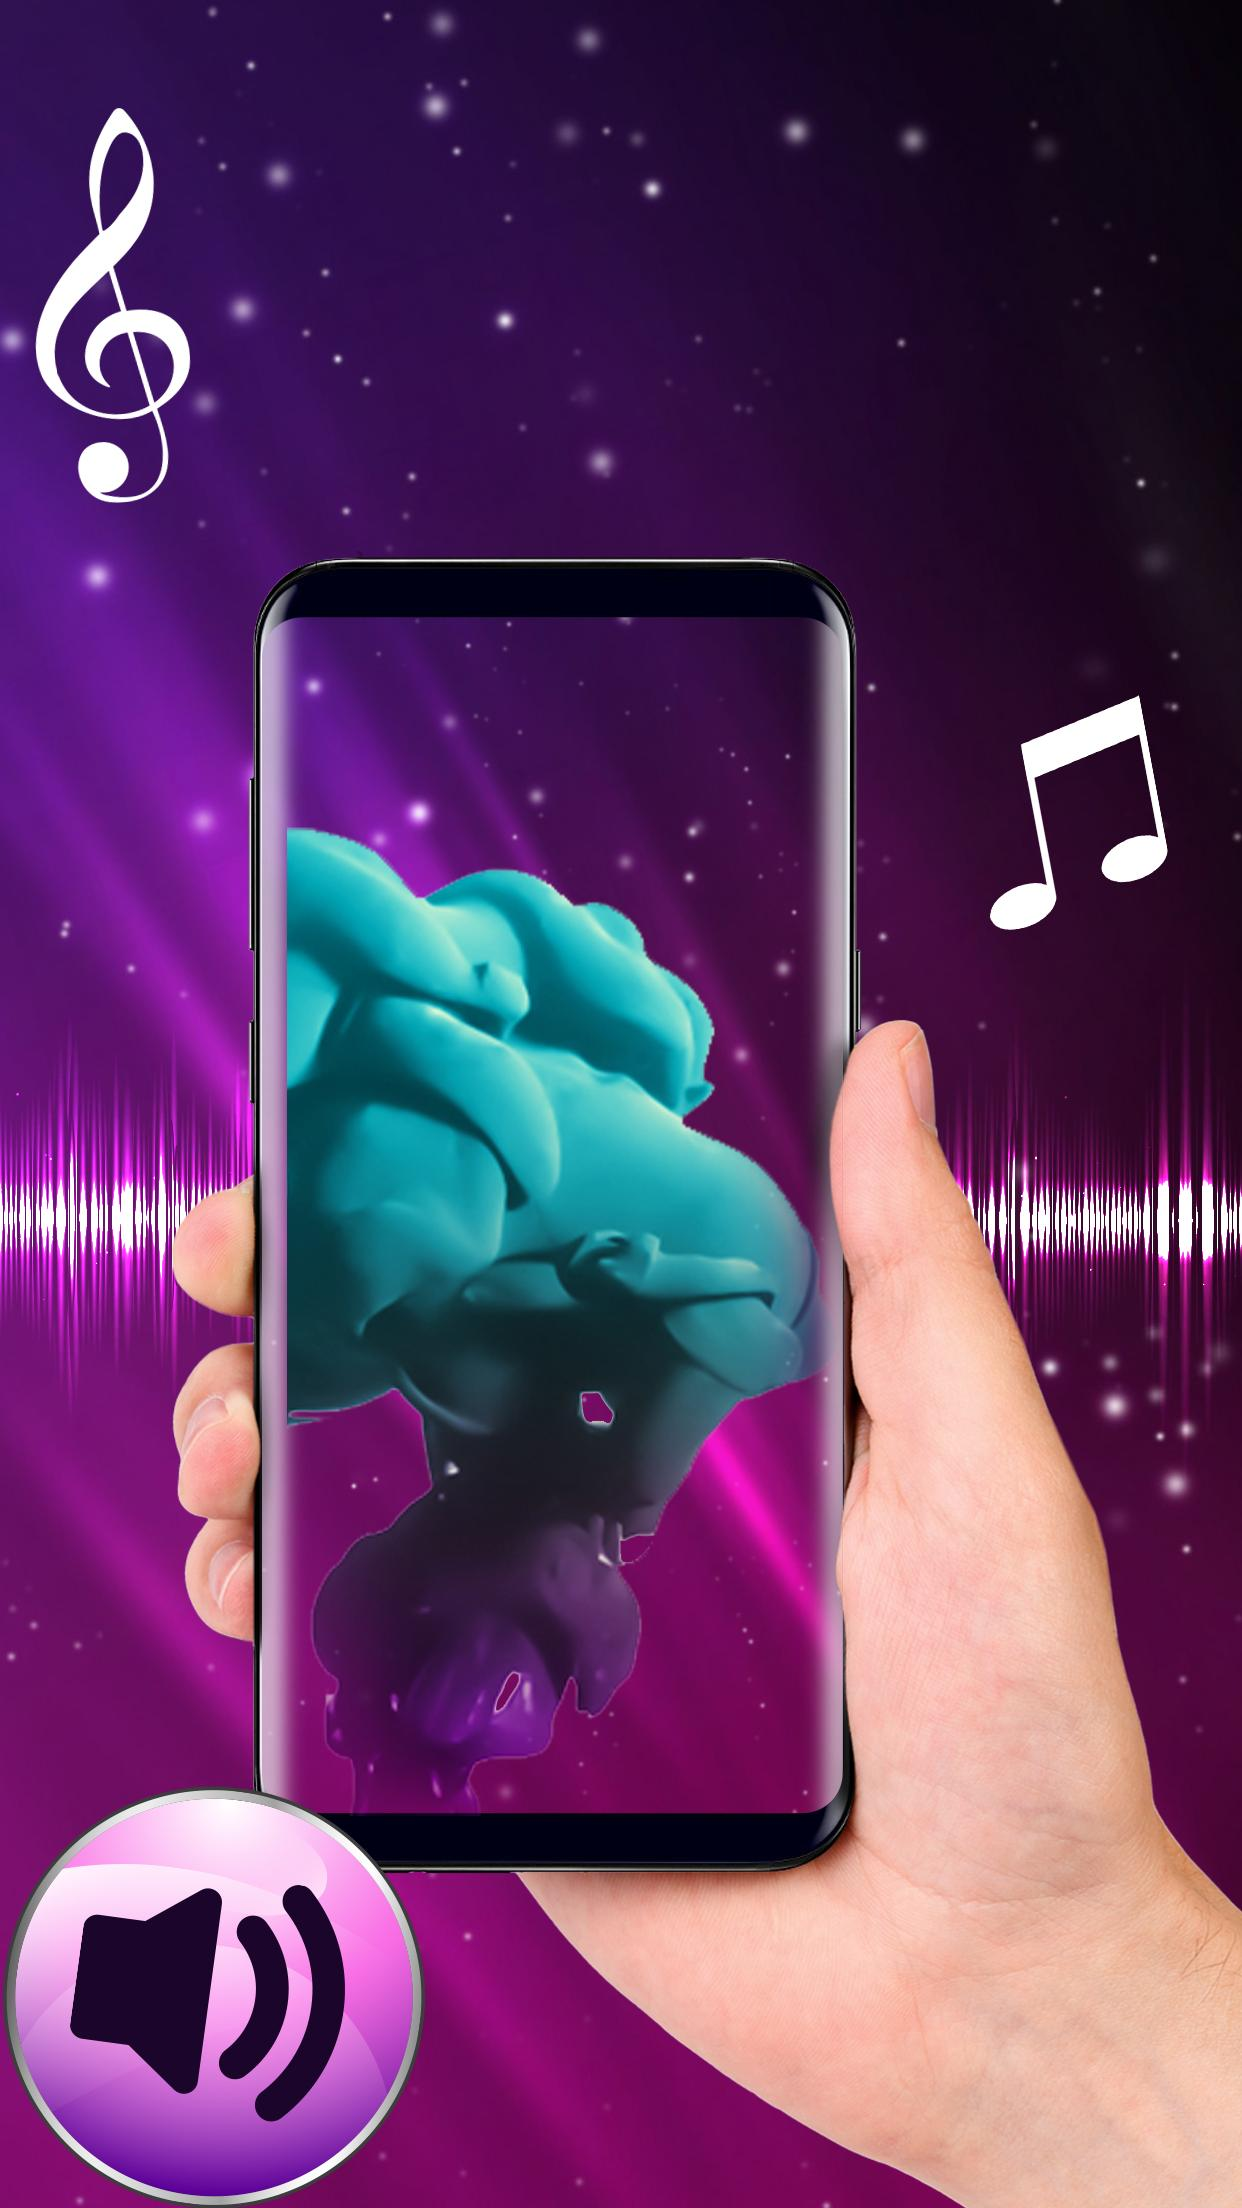 Galaxy S8 Live Wallpaper for Android - APK Download